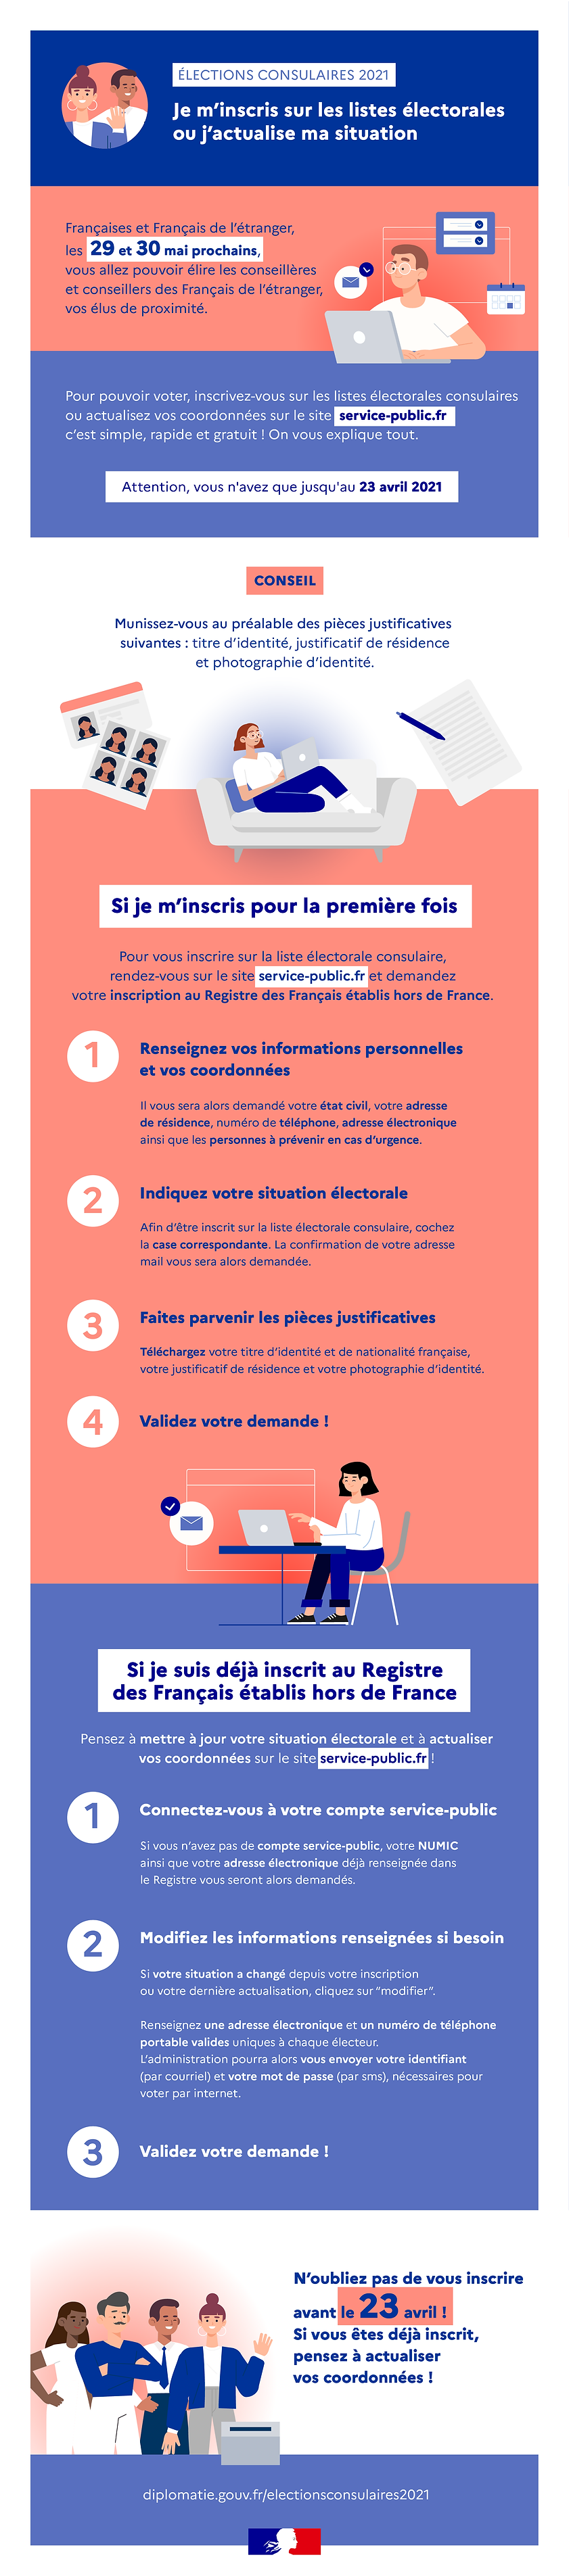 mae_infographie_v3_cle831111.png